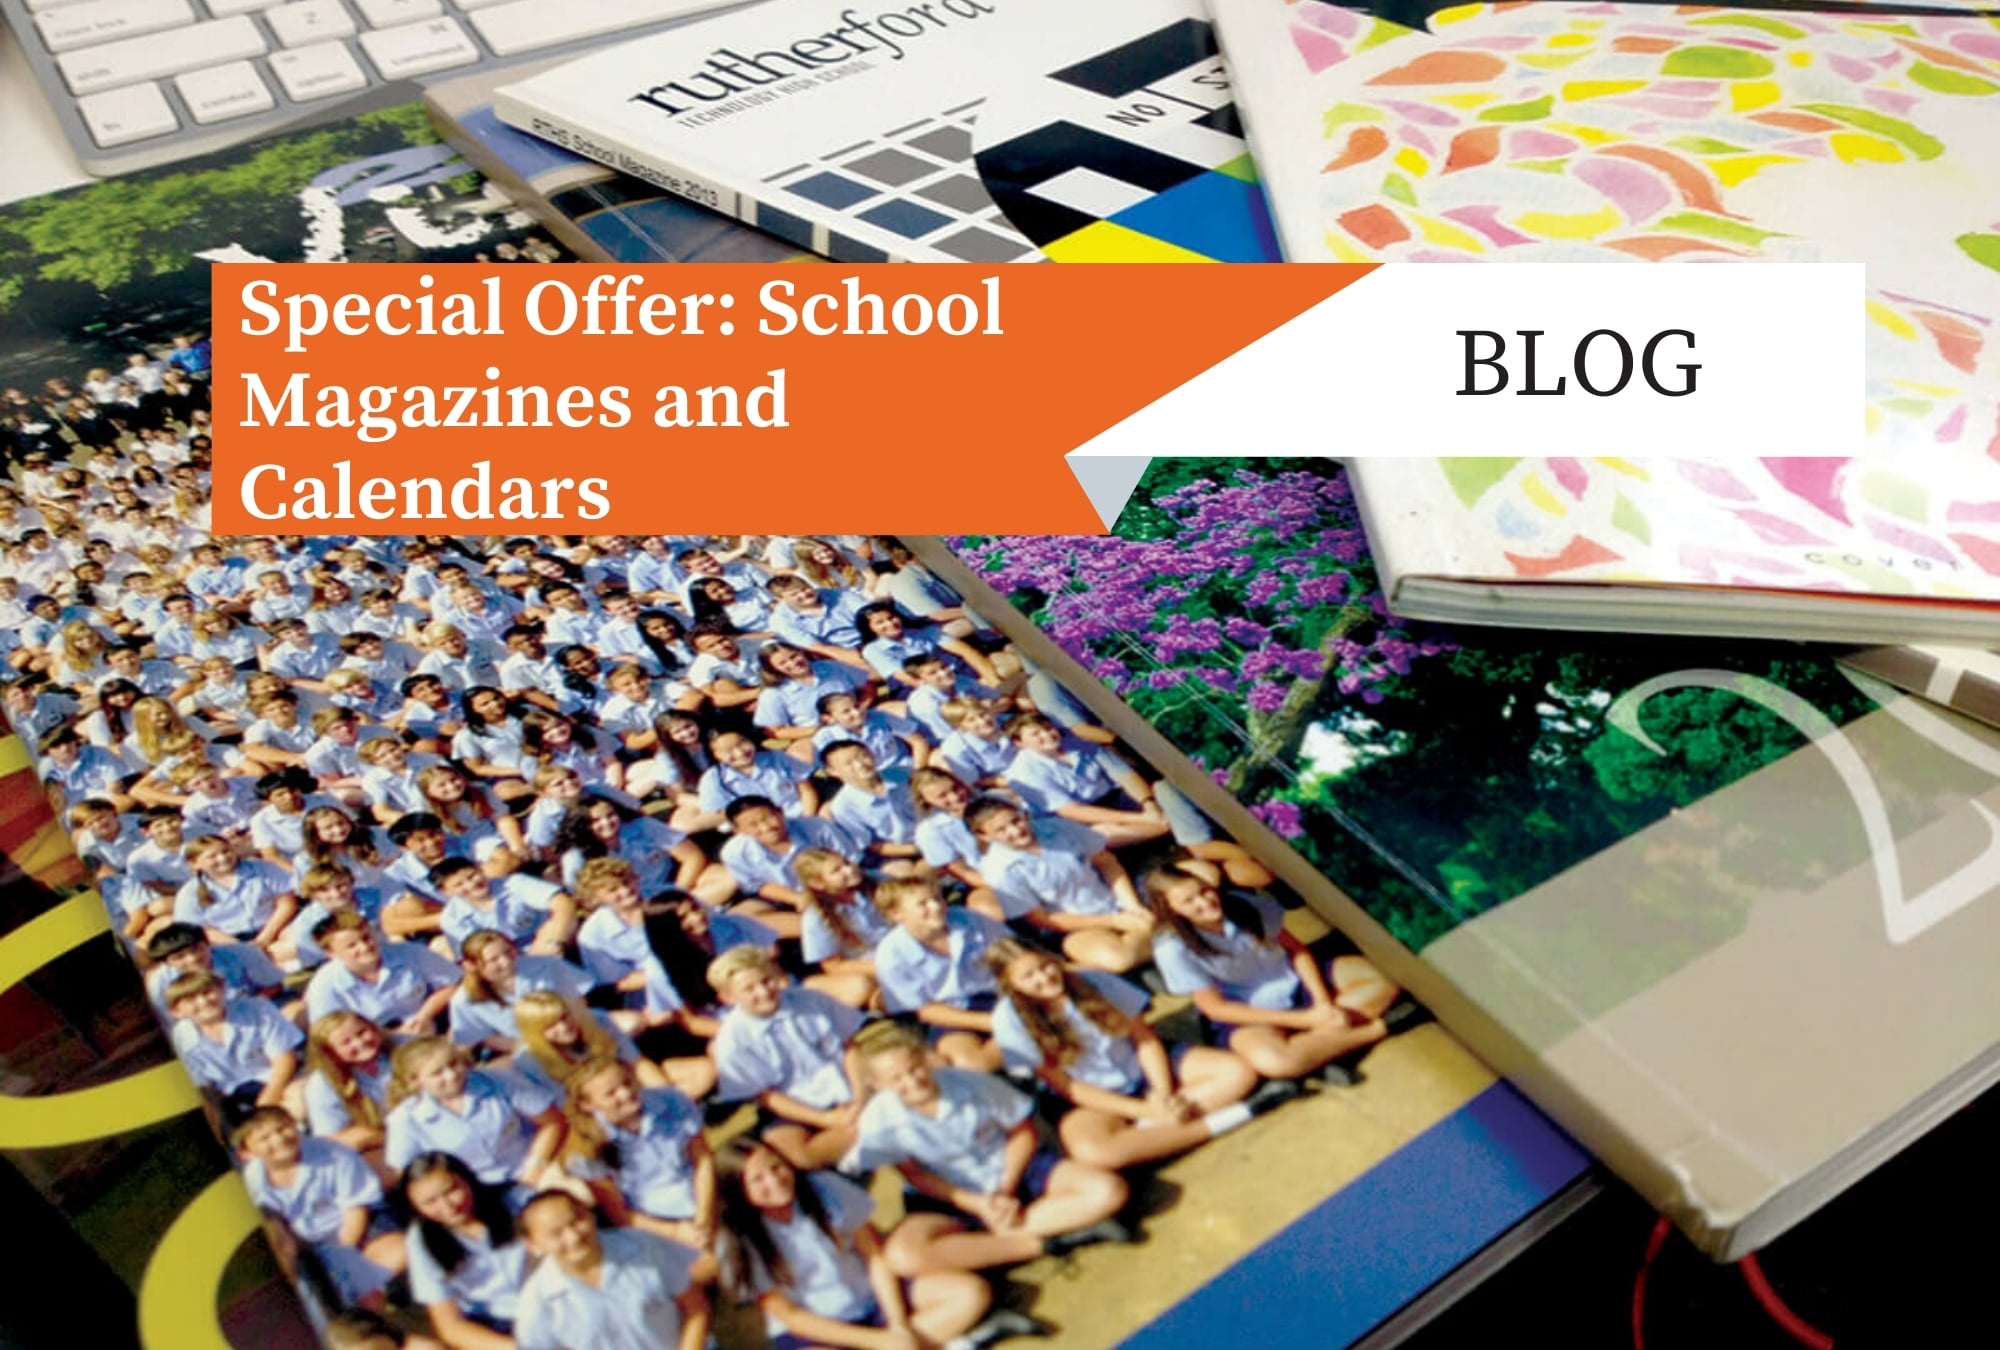 Special Offer: School Magazines and Calendars